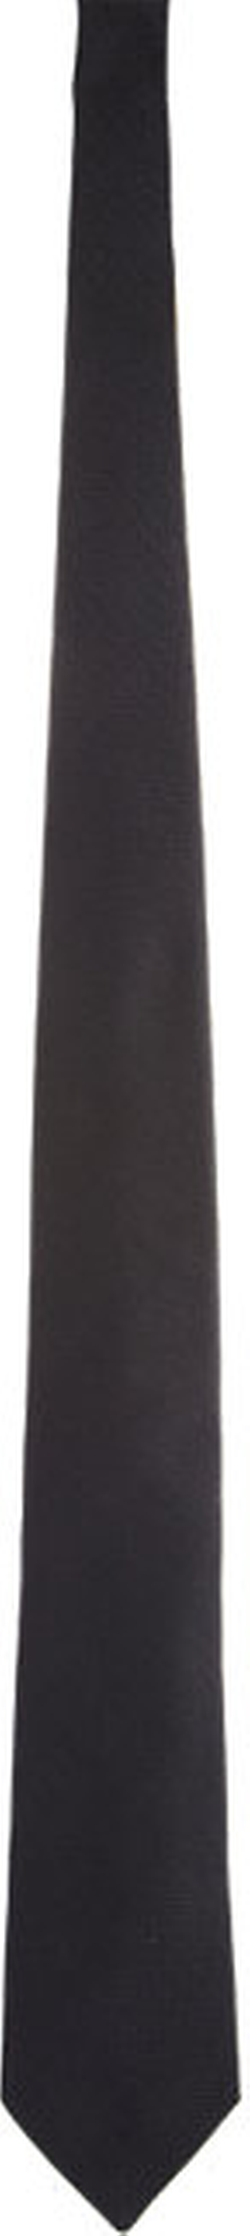 Barneys  New York - Black Textured Silk Tie